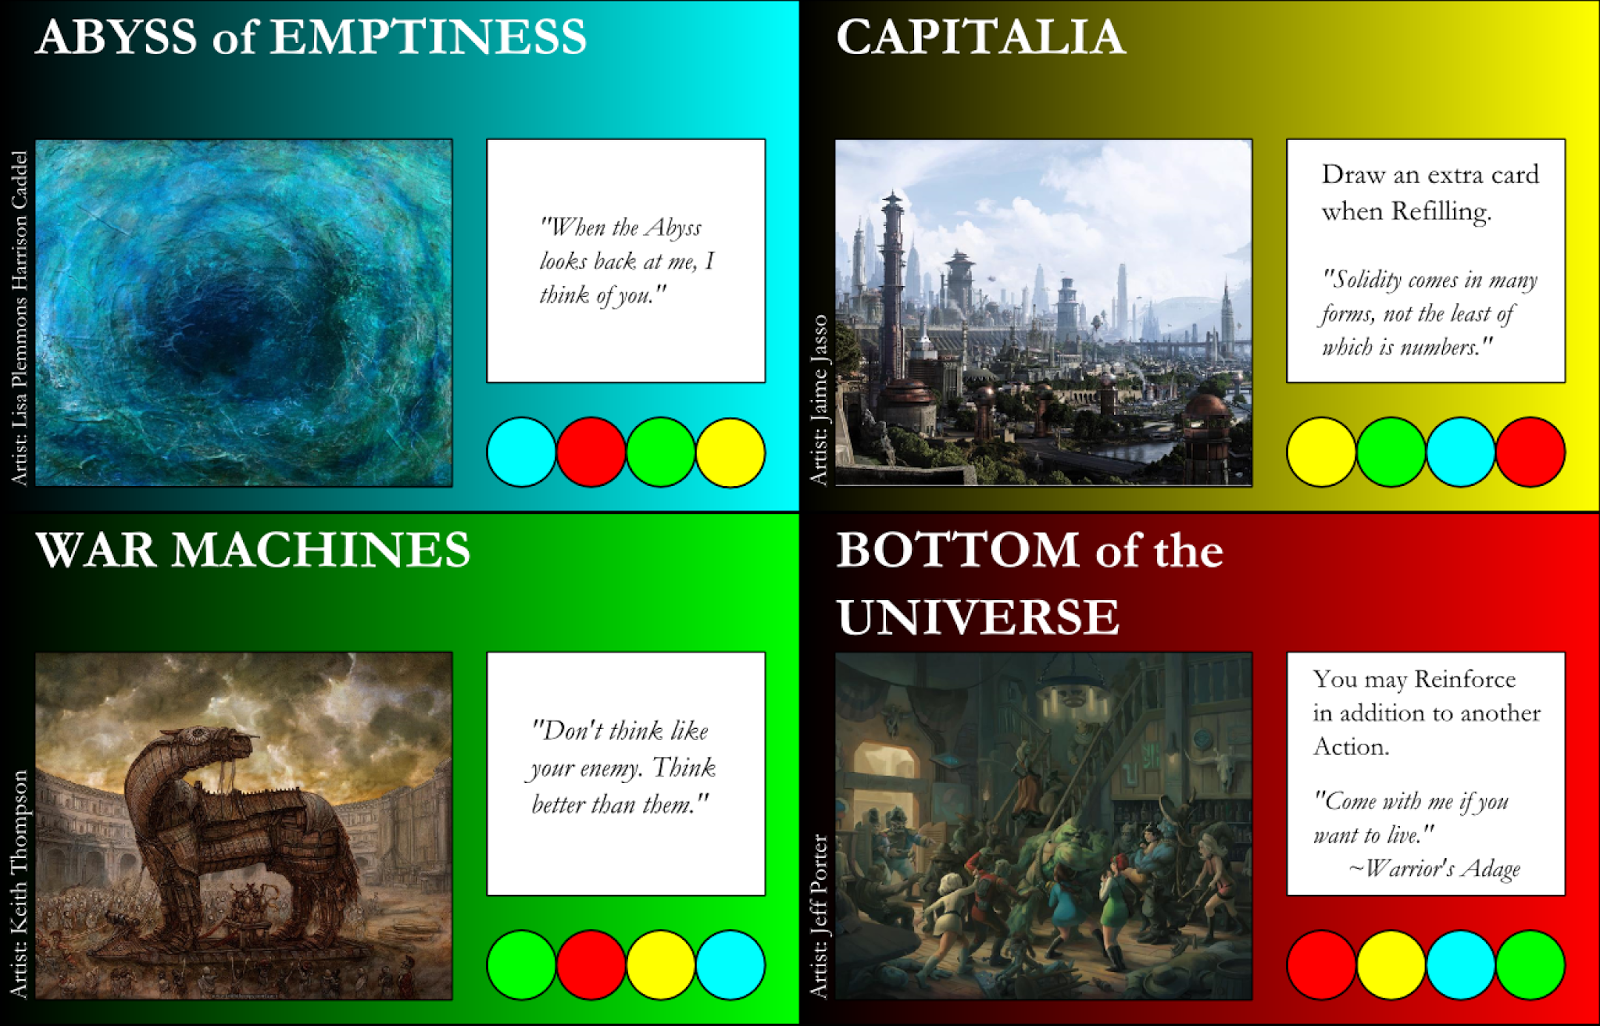 Abyss of Emptiness, Capitalia, War Machines, Bottom of the Universe